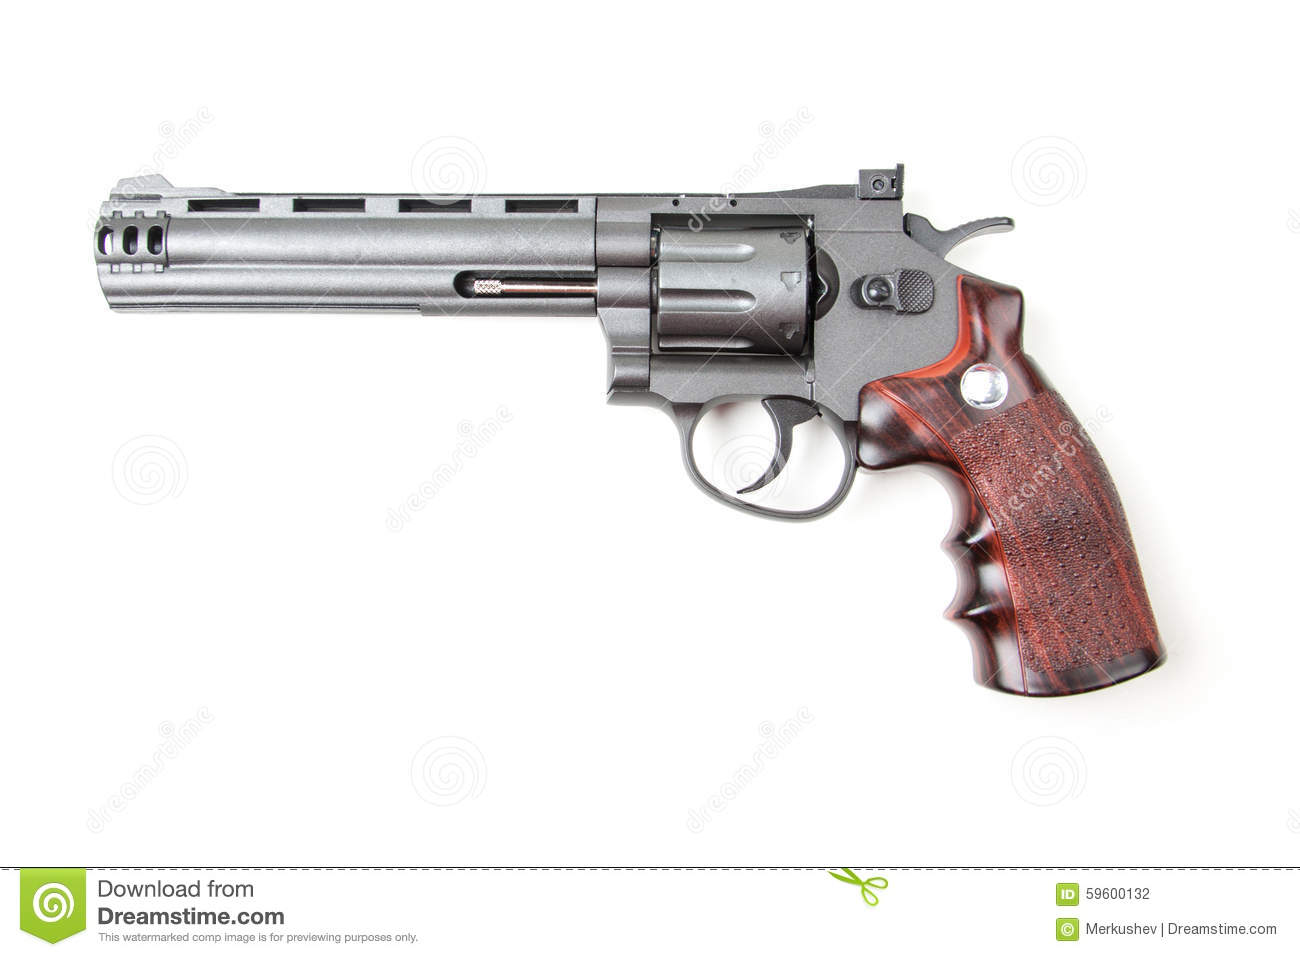 gun white background - photo #12